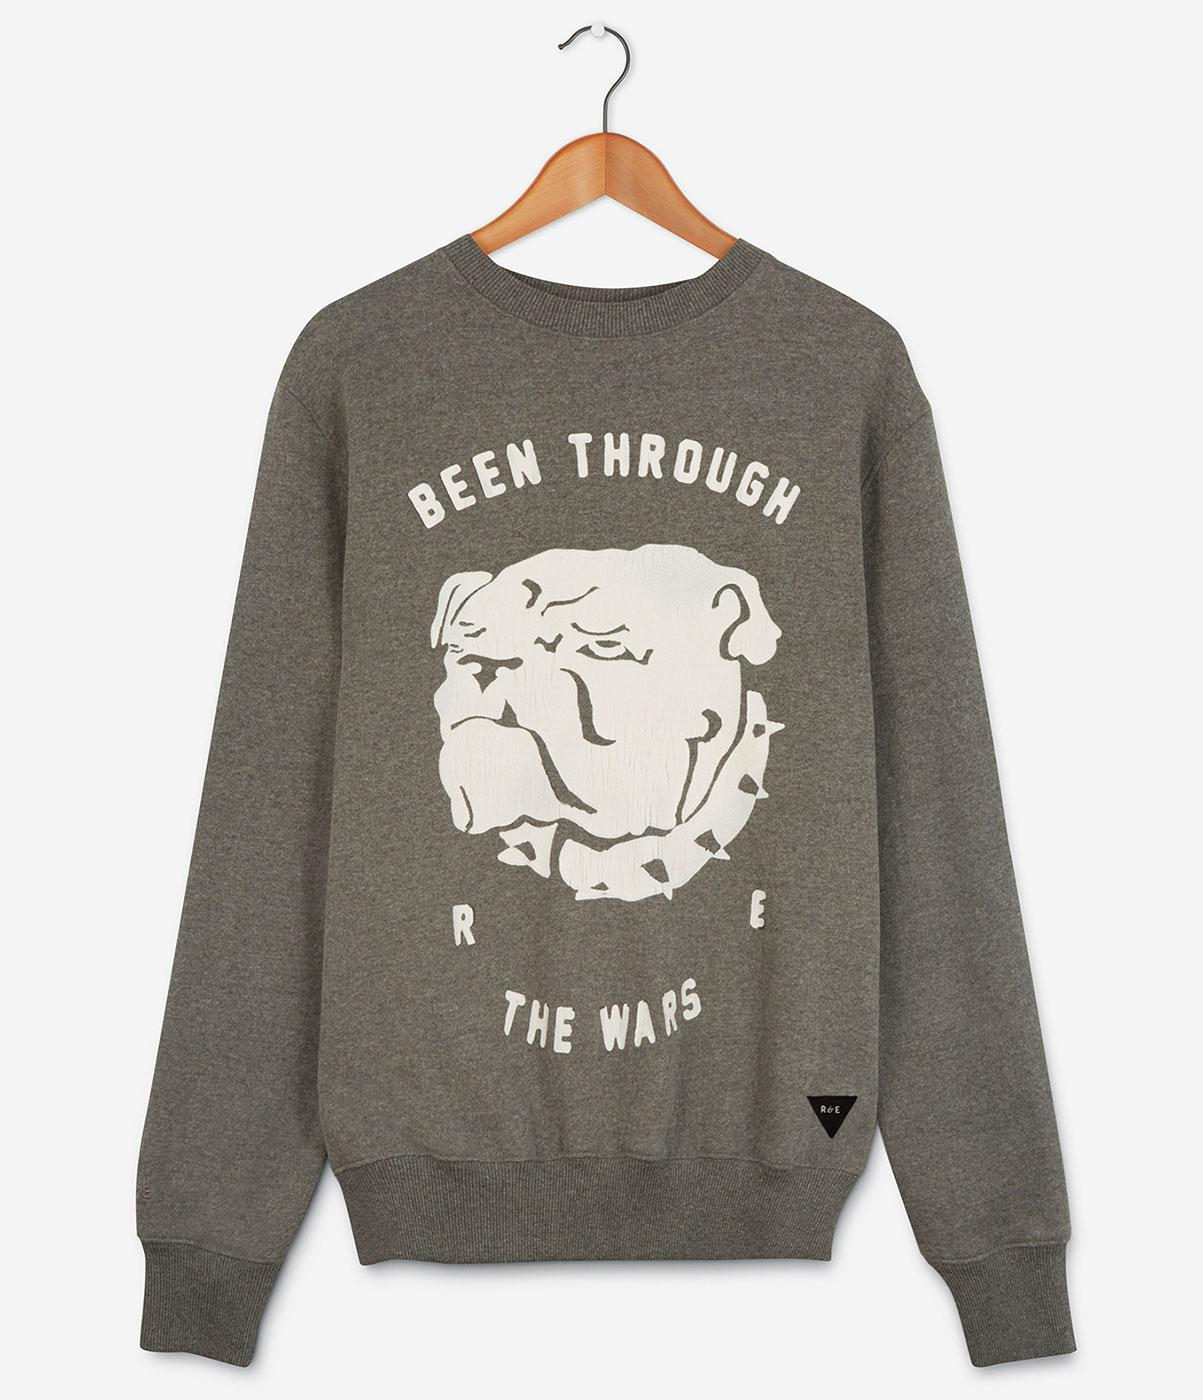 REALM & EMPIRE Alma Wars Bull Dog Print Sweatshirt